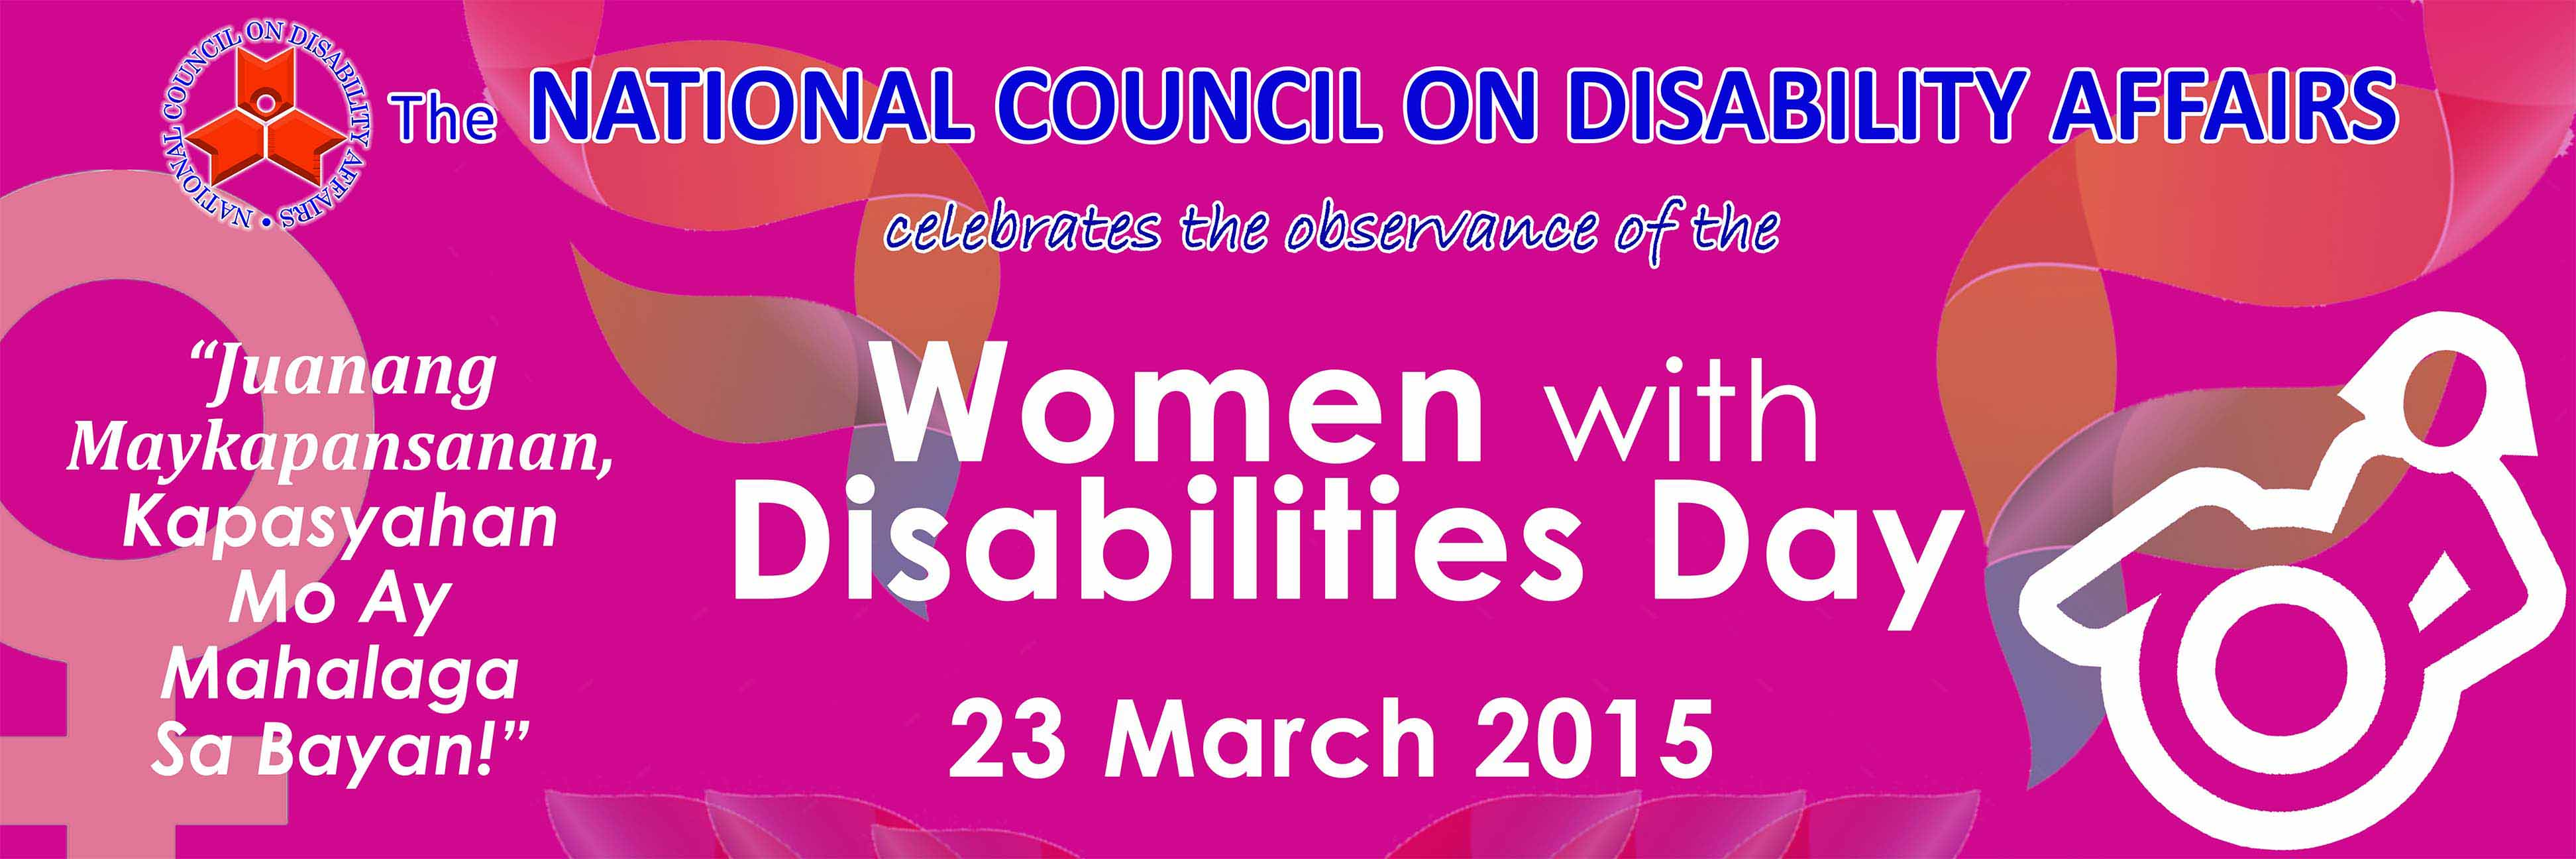 2015 Women With Disabilities